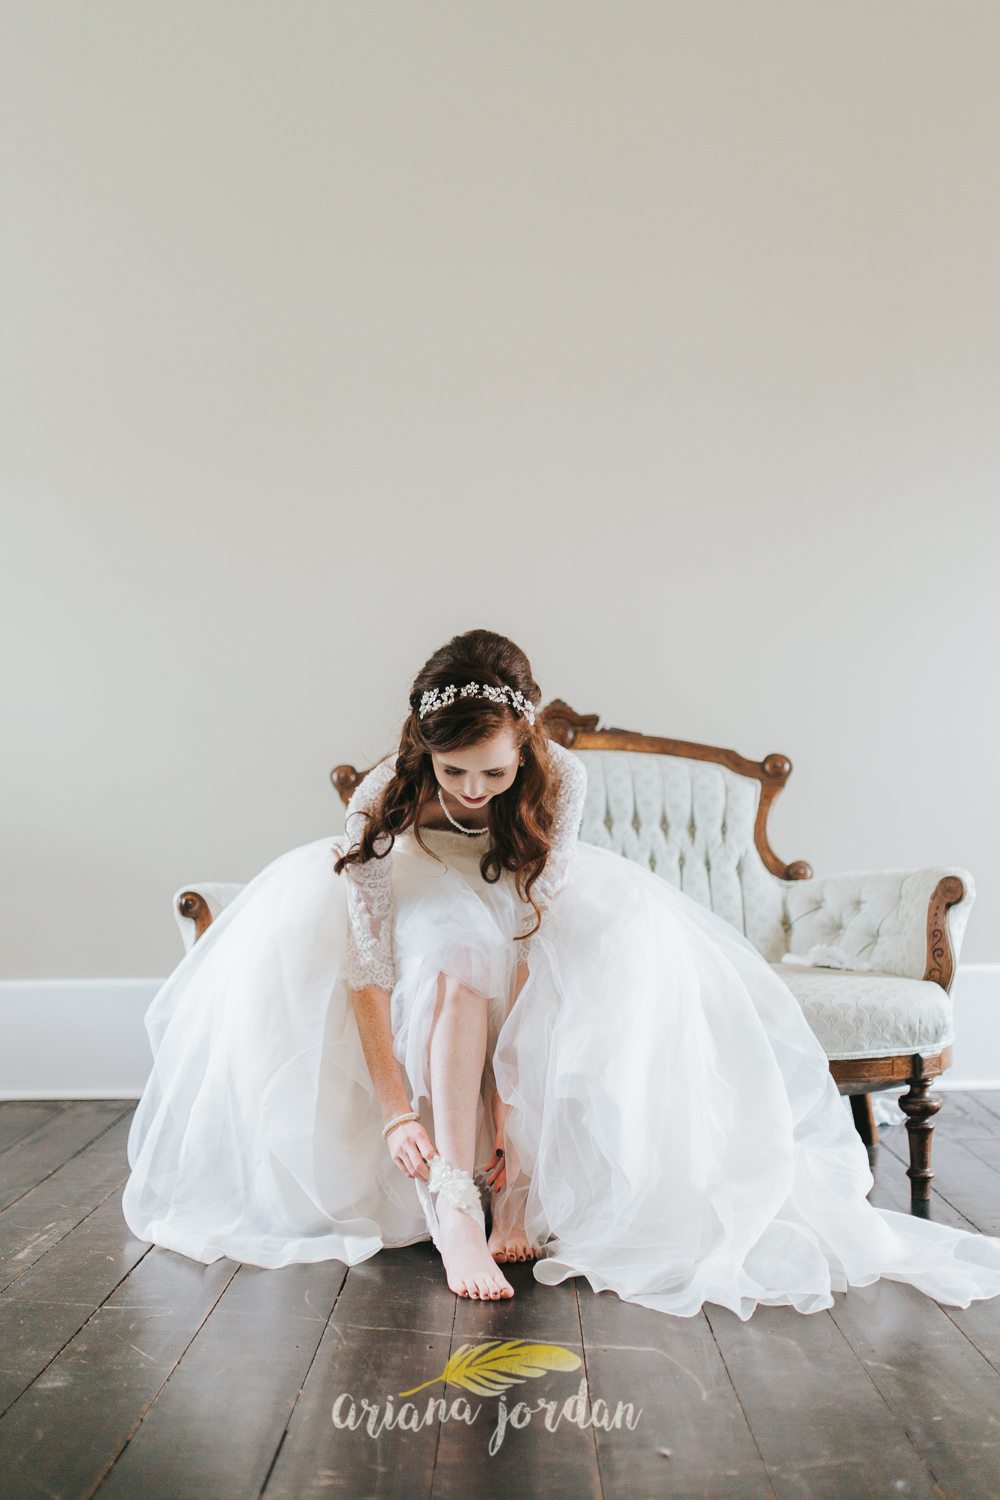 075 - Ariana Jordan - Kentucky Wedding Photographer - Landon & Tabitha 6310.jpg